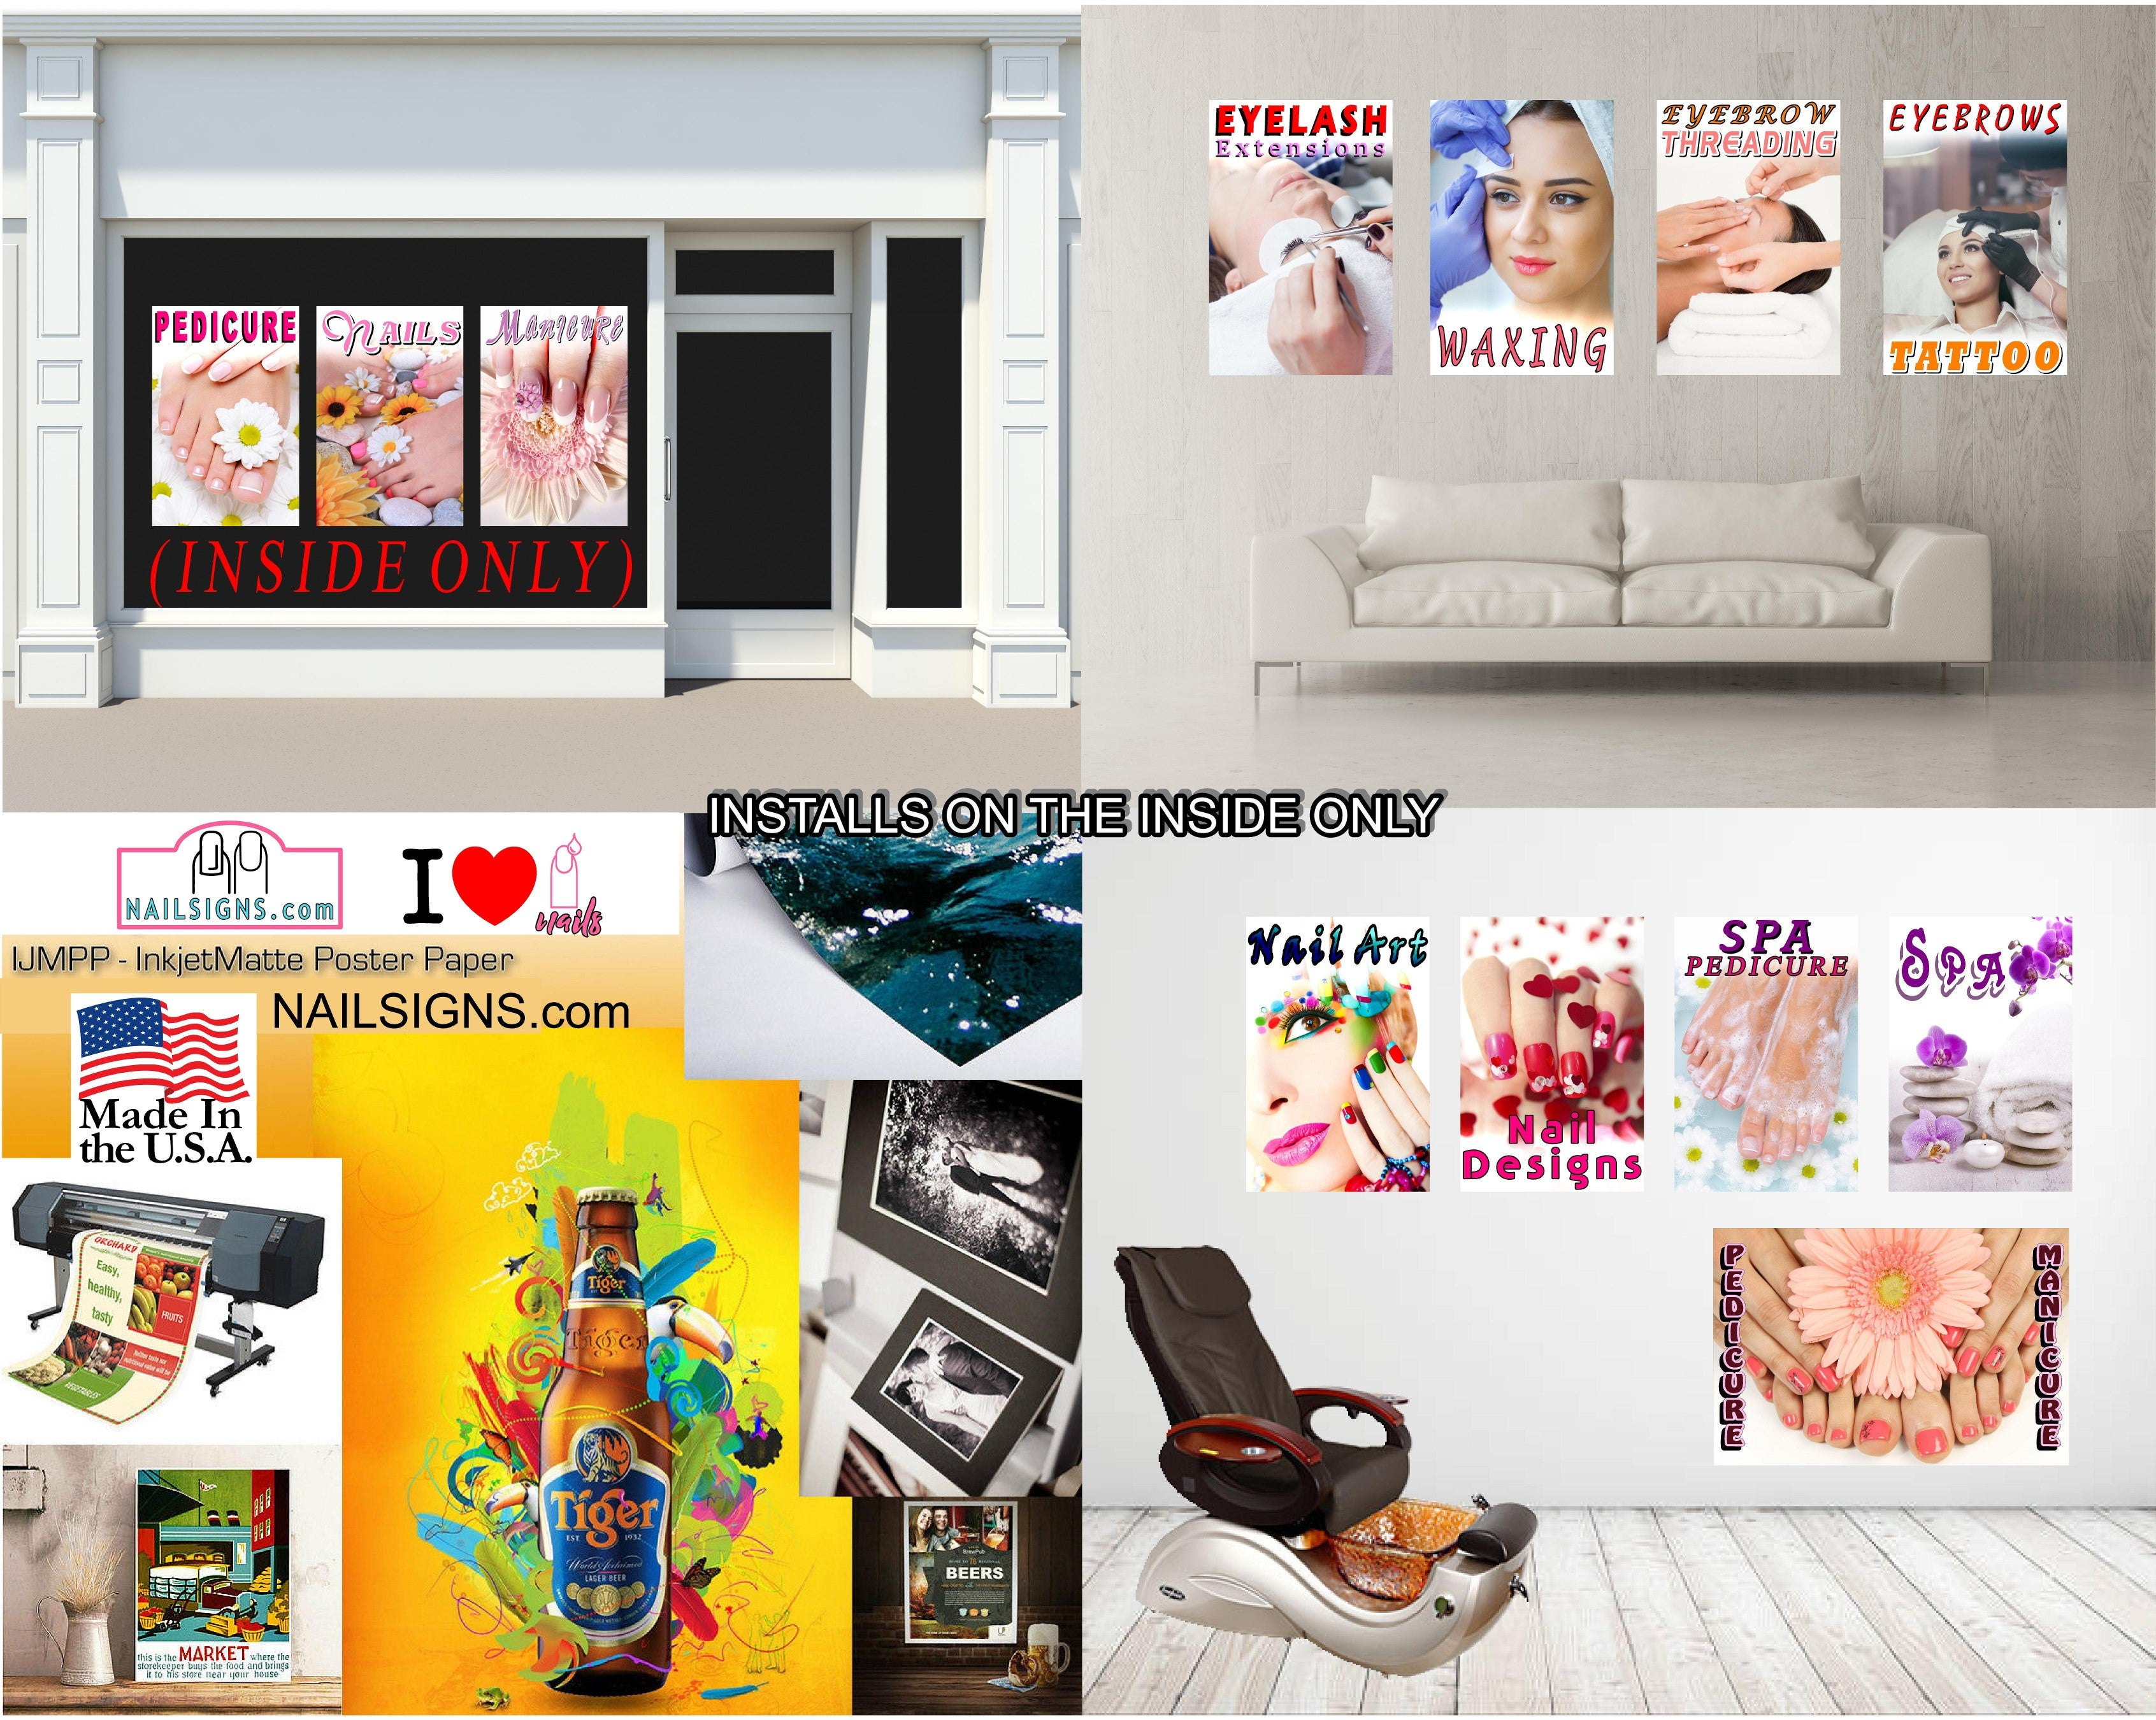 Spa 29 Photo-Realistic Paper Poster Premium Matte Interior Inside Sign Advertising Marketing Wall Window Non-Laminated Pedicure Horizontal